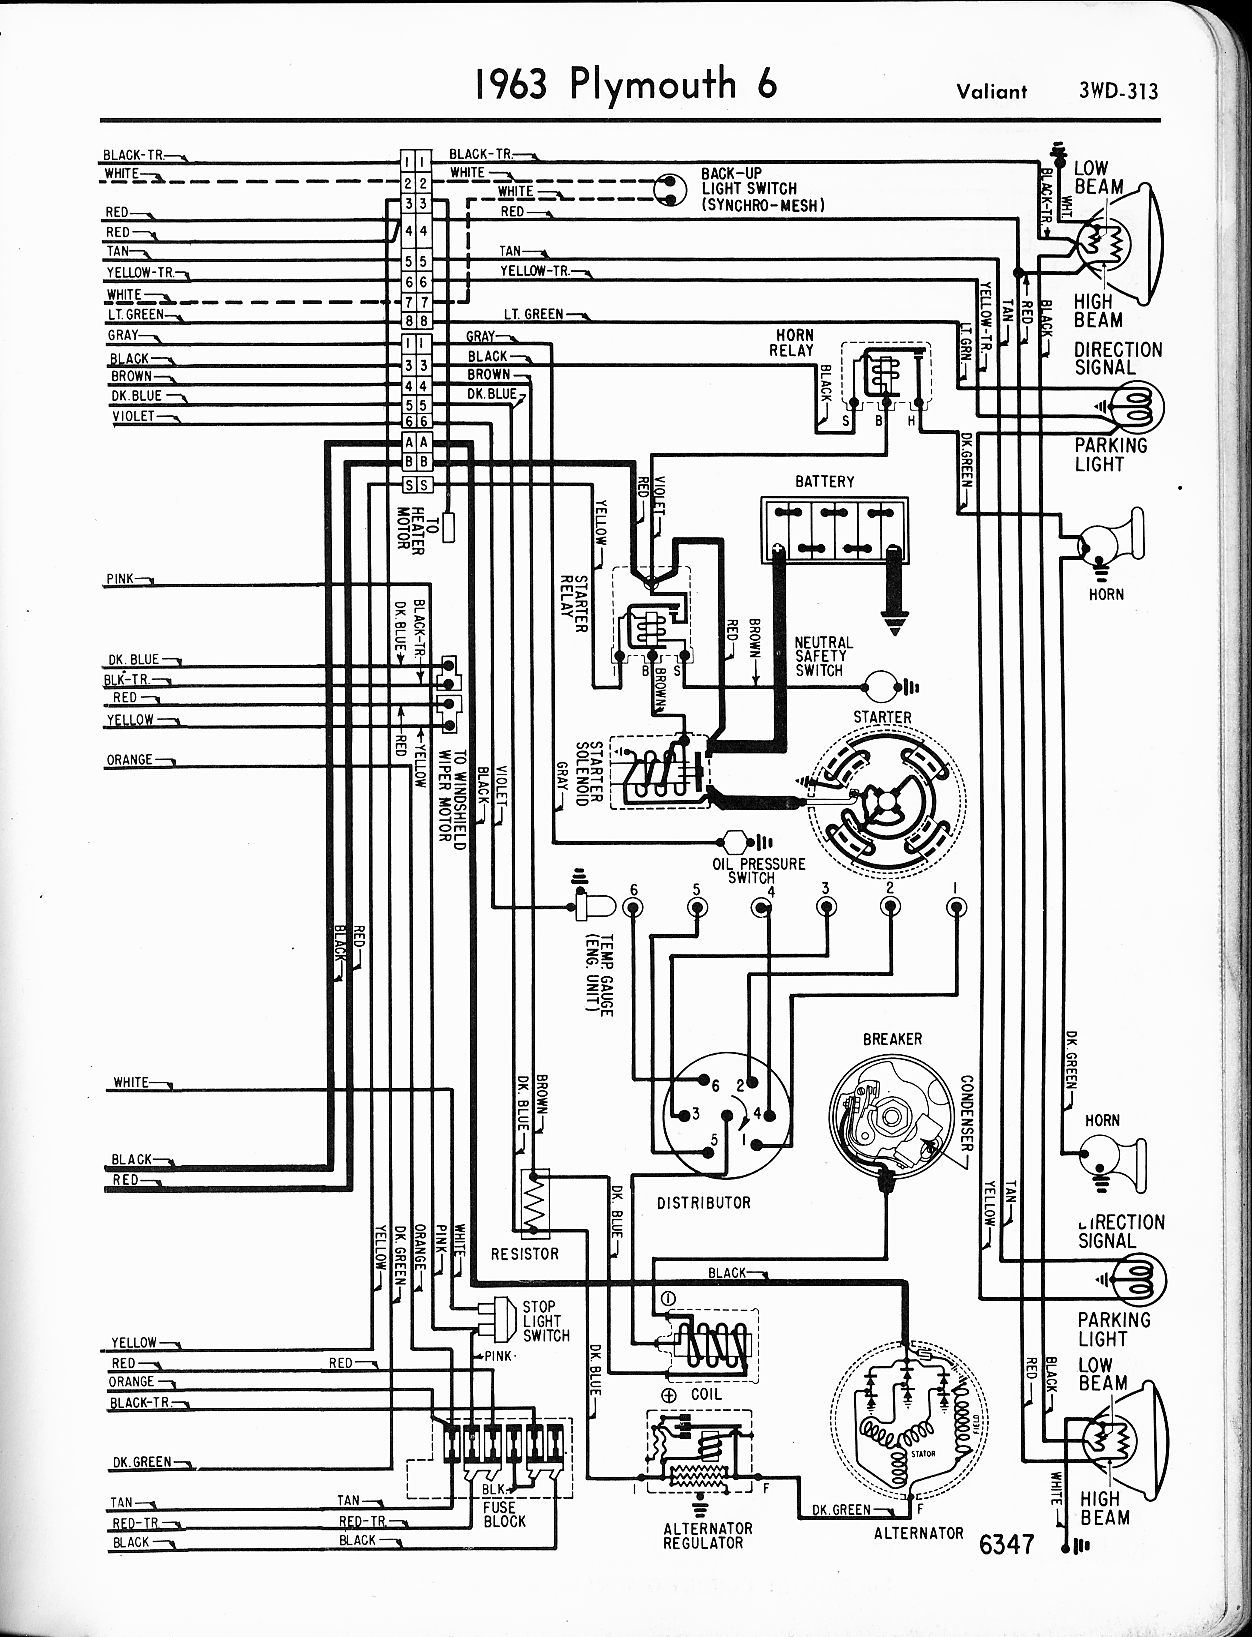 hight resolution of 1973 plymouth wiring diagram data wiring diagram1973 plymouth wiring diagrams completed wiring diagrams 74 nova dash